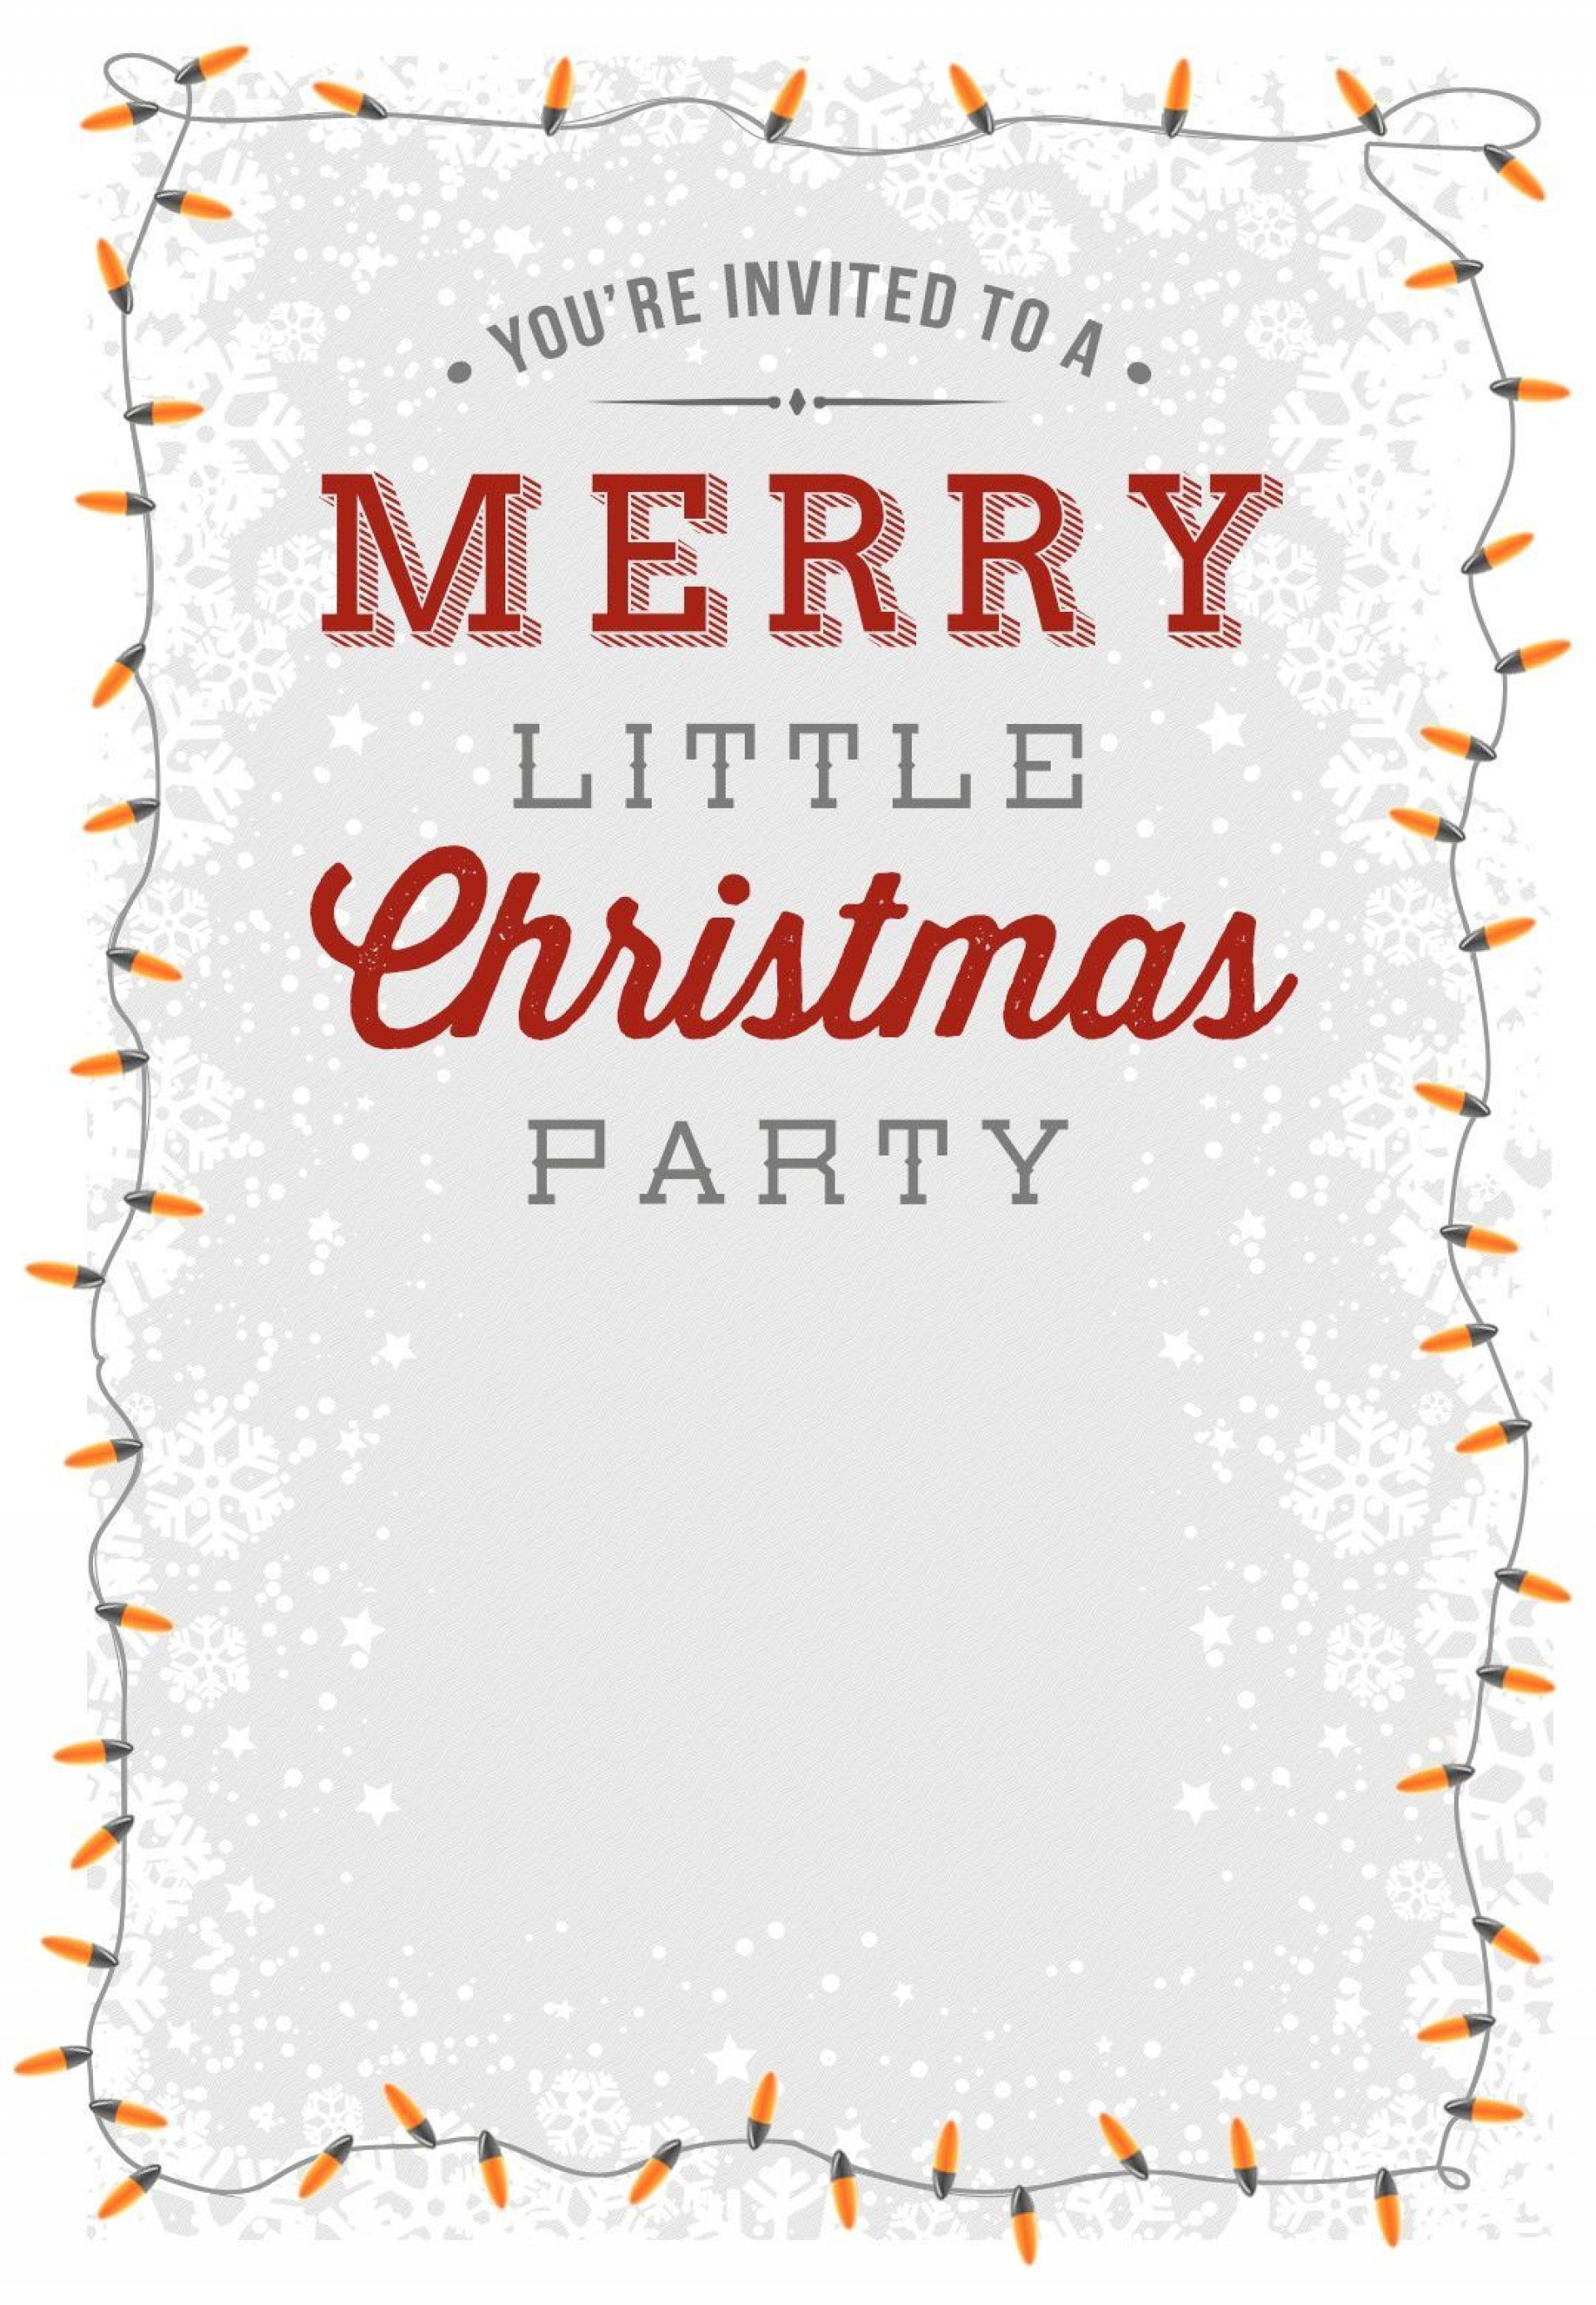 006 Fascinating Christma Party Invitation Template Idea  Funny Free Download Word Card1920